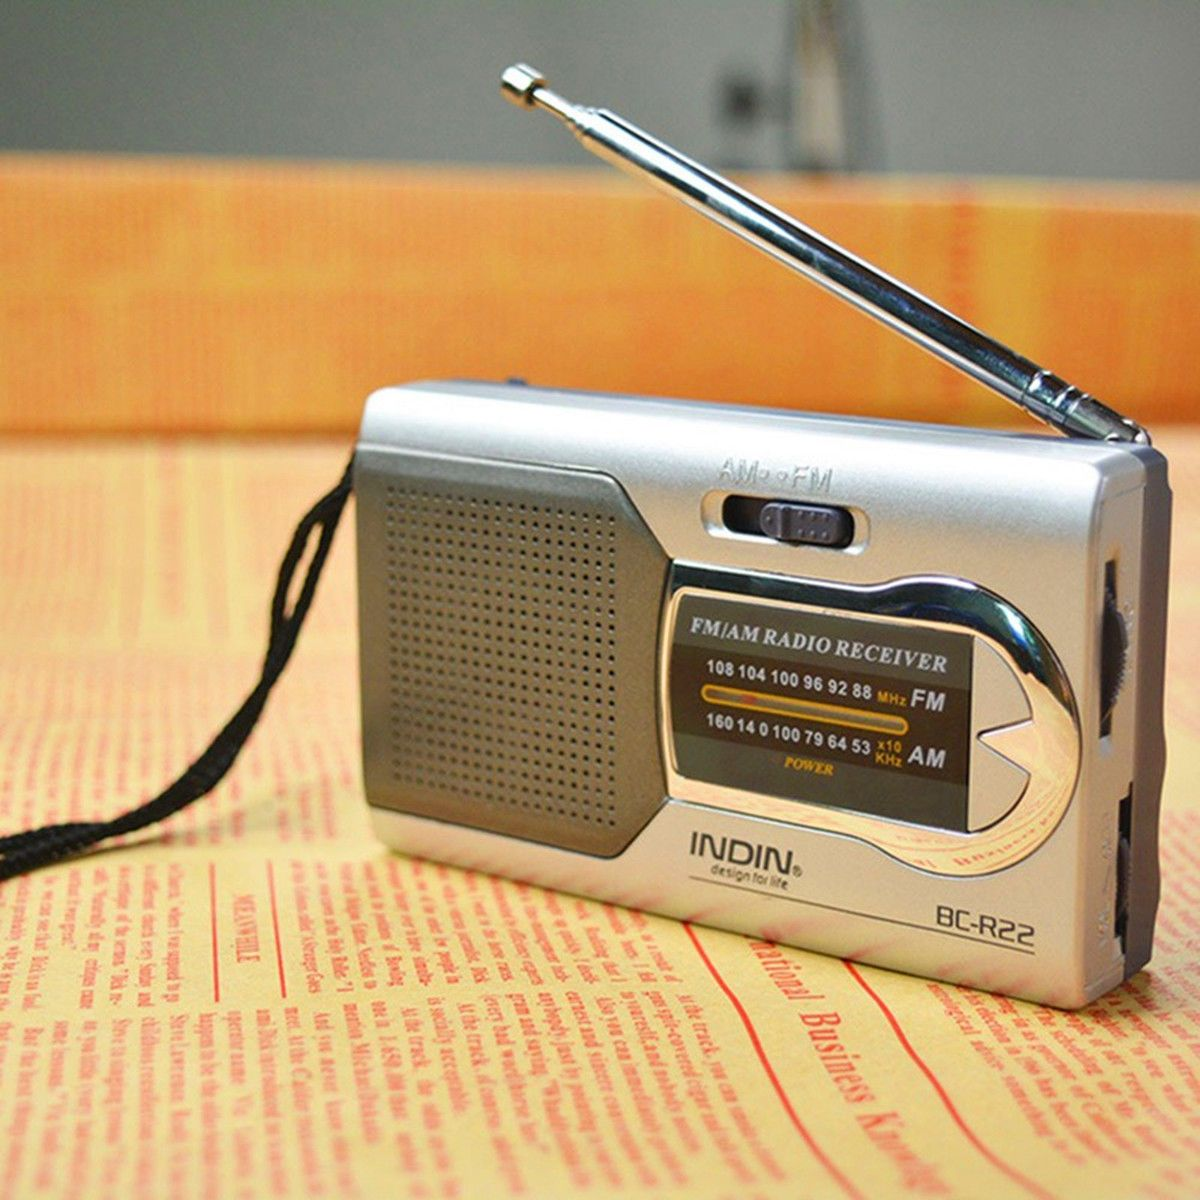 2018 Apleok BC-R22 Portable AM FM Radio Receiver Built in Speaker with Standard Earphones Jack Mini Radio